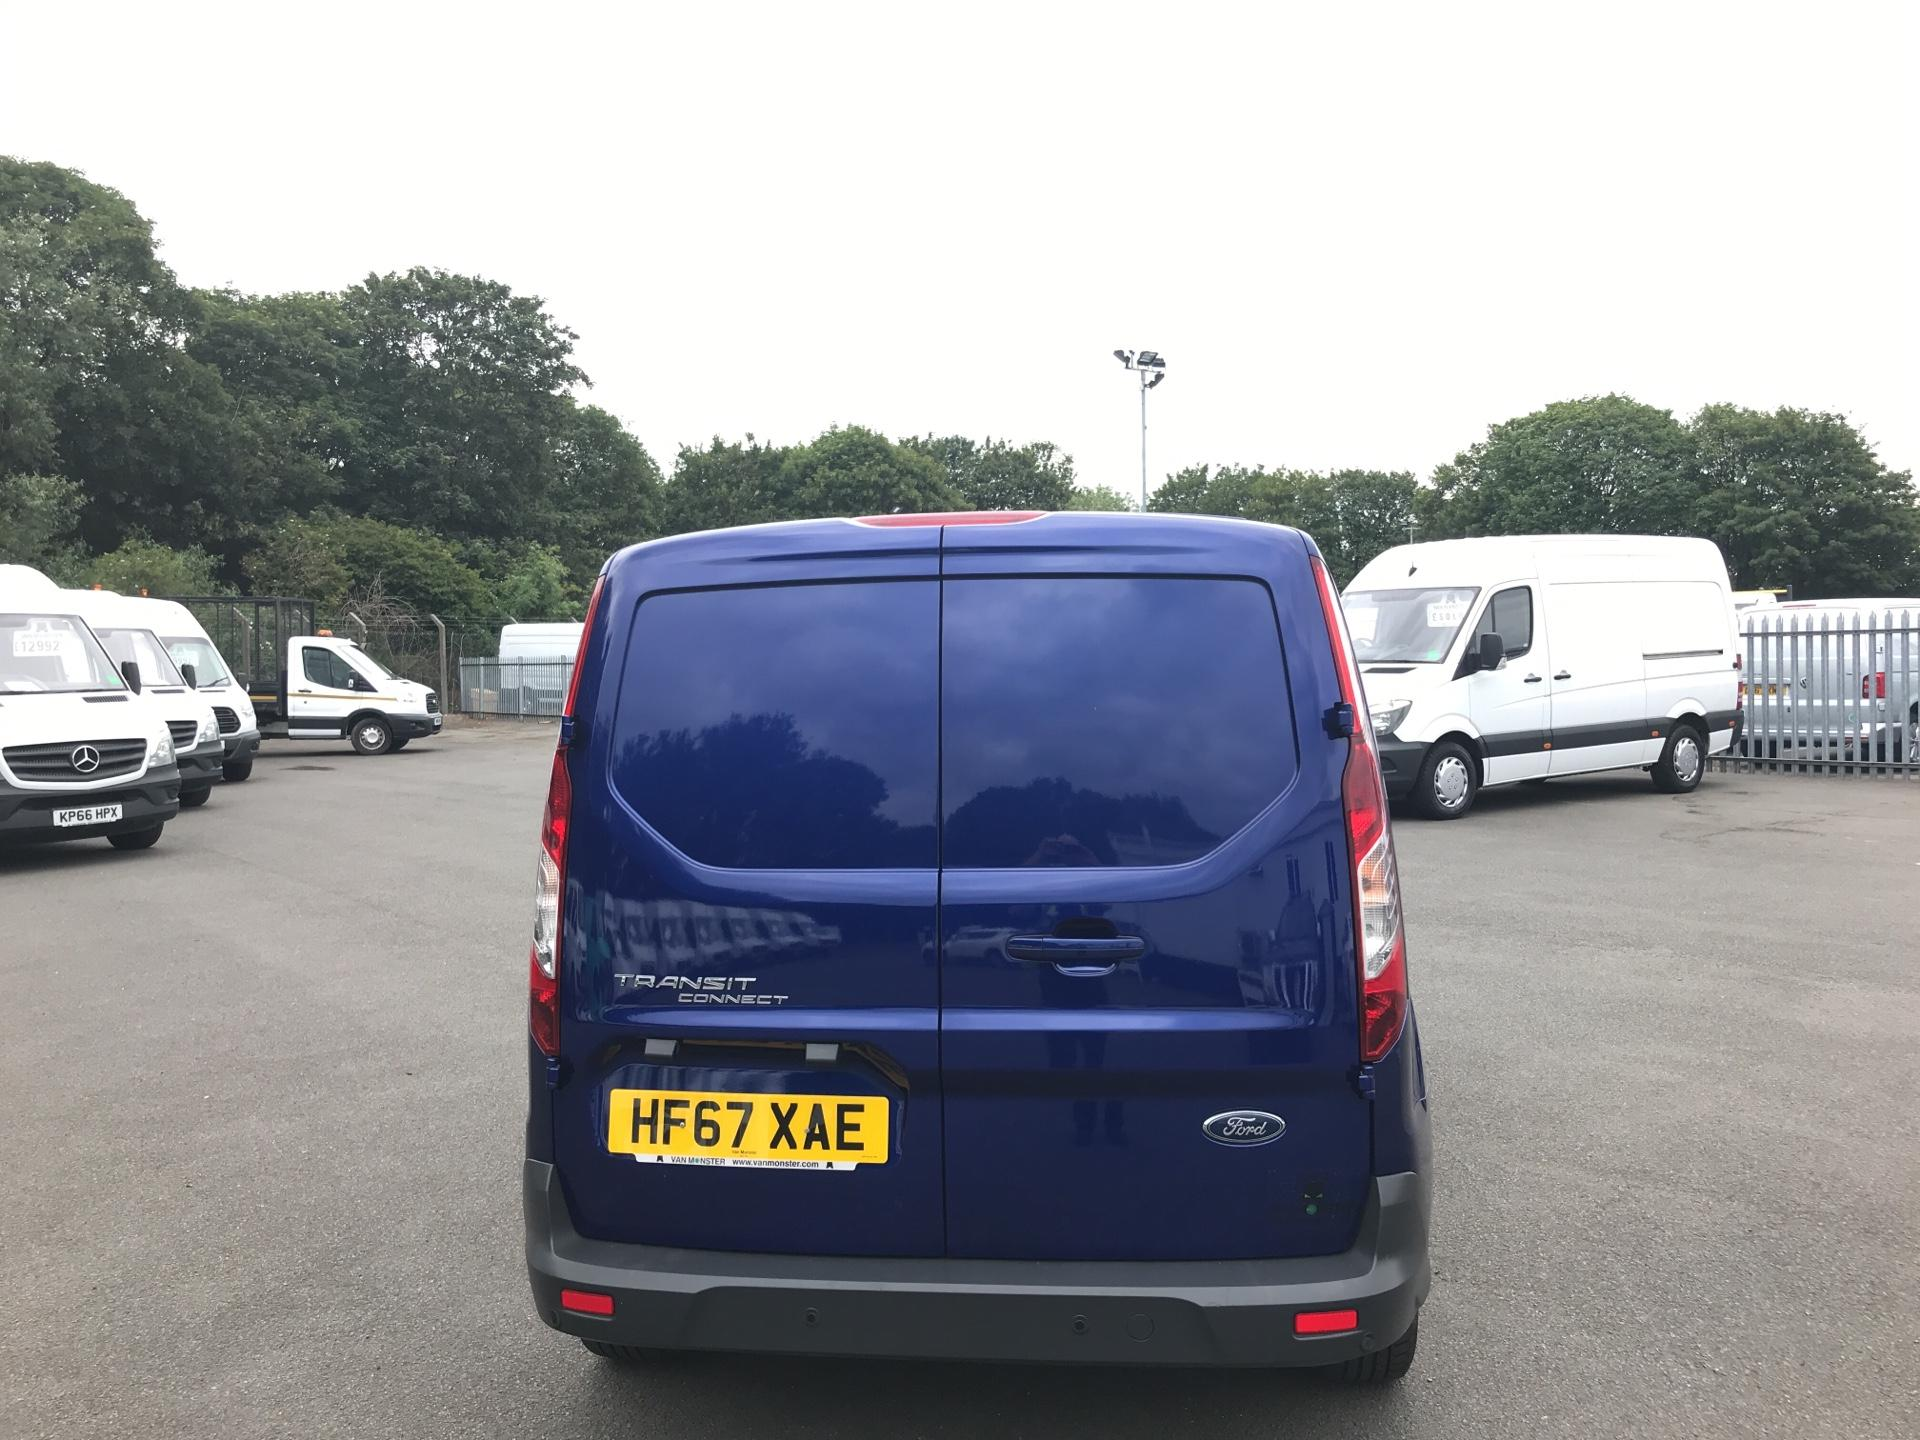 2017 Ford Transit Connect 1.5 TDCI 120PS LIMITED VAN EURO 6 (HF67XAE) Image 4